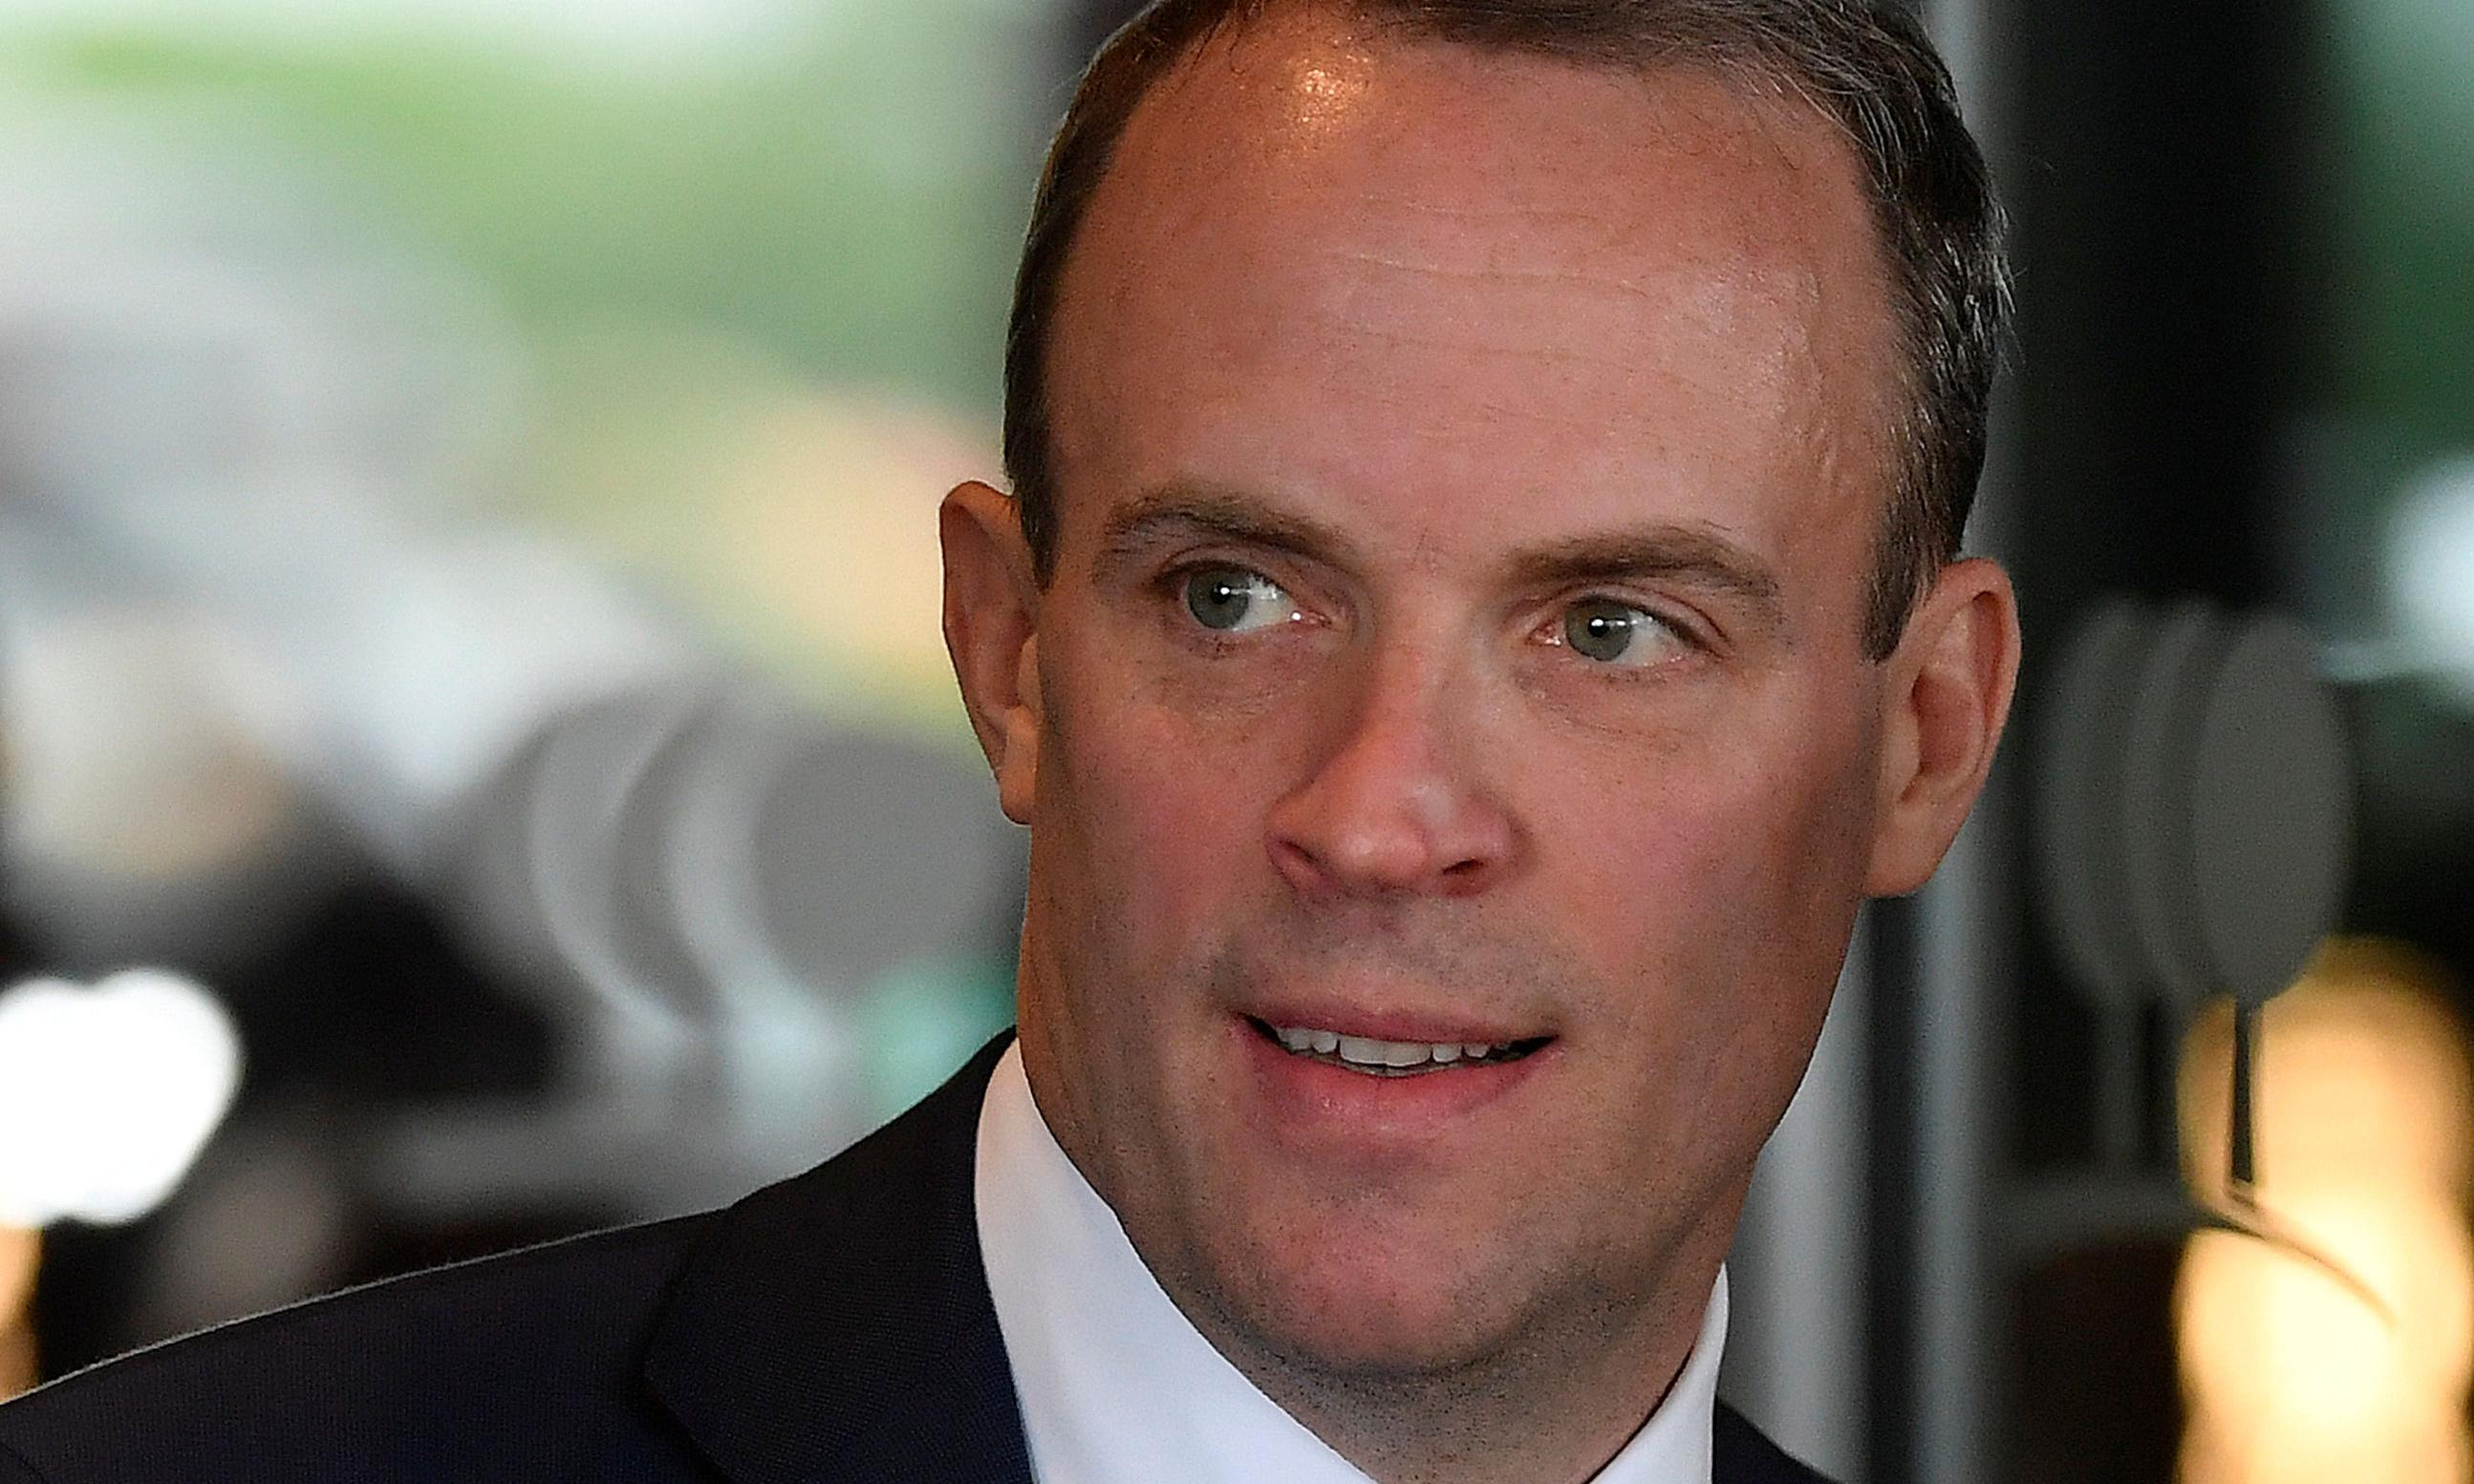 Dominic Raab: Tories are toast if they miss Brexit October deadline